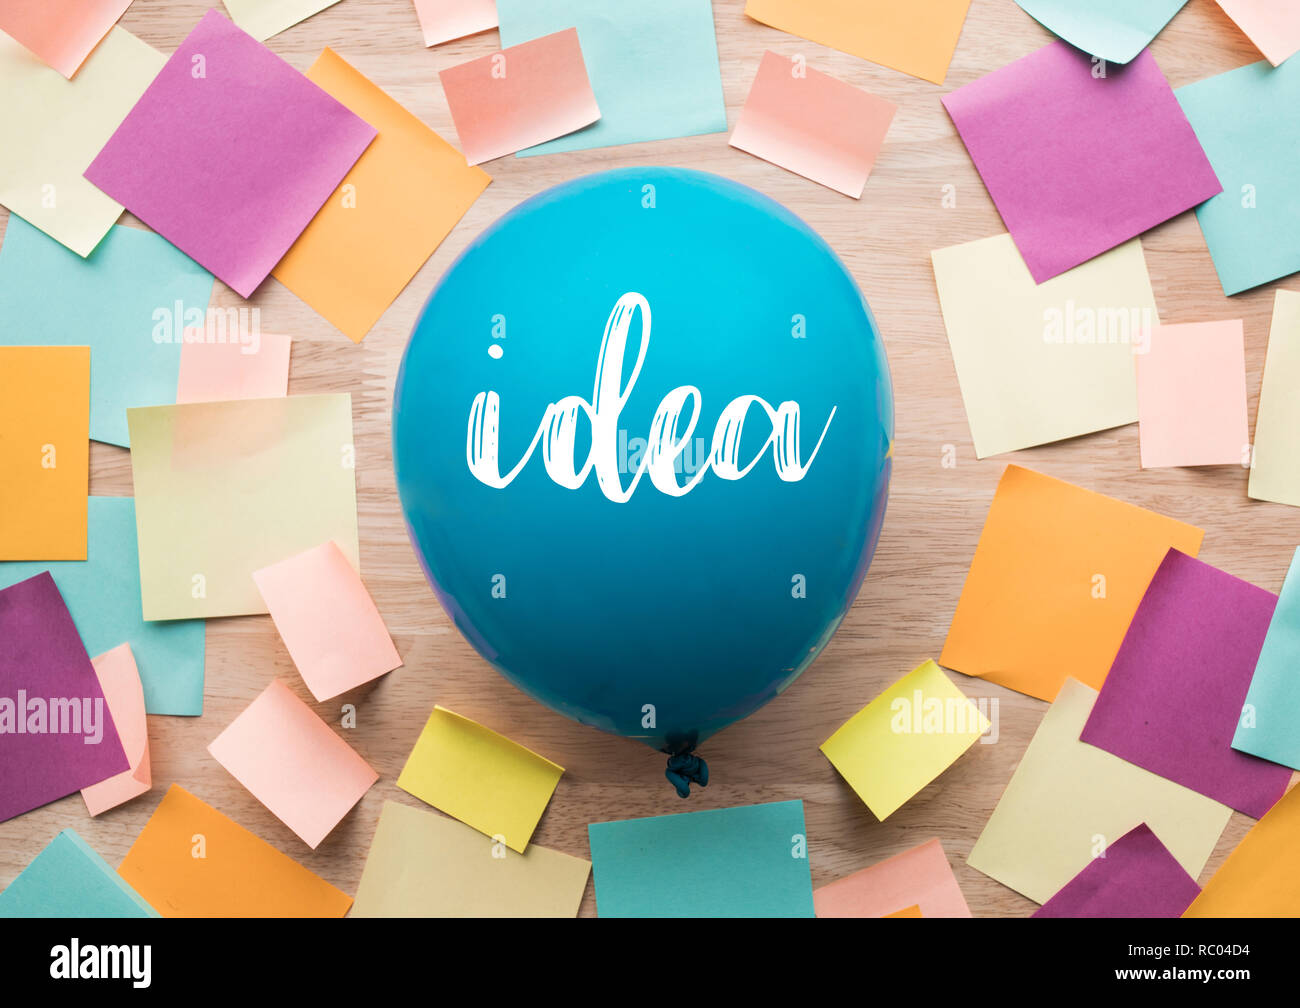 Inspiration ideas concepts with balloon and colorful notepaper on wood table.nobody - Stock Image